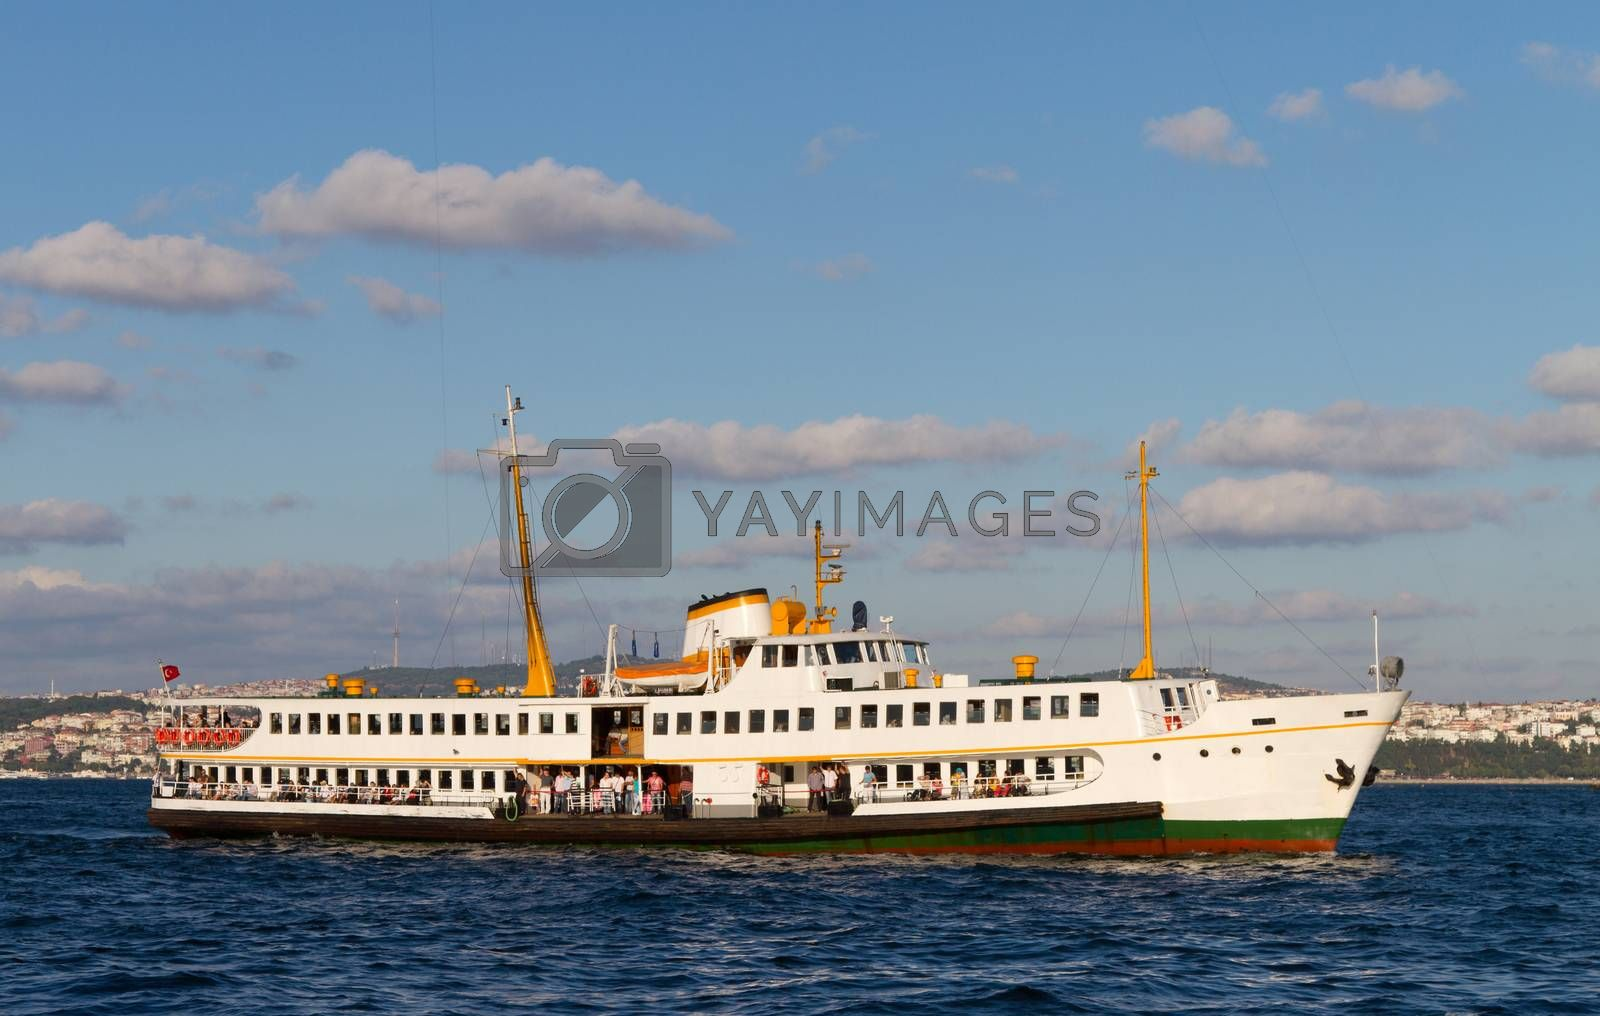 A ferry from Bosphorus, Istanbul